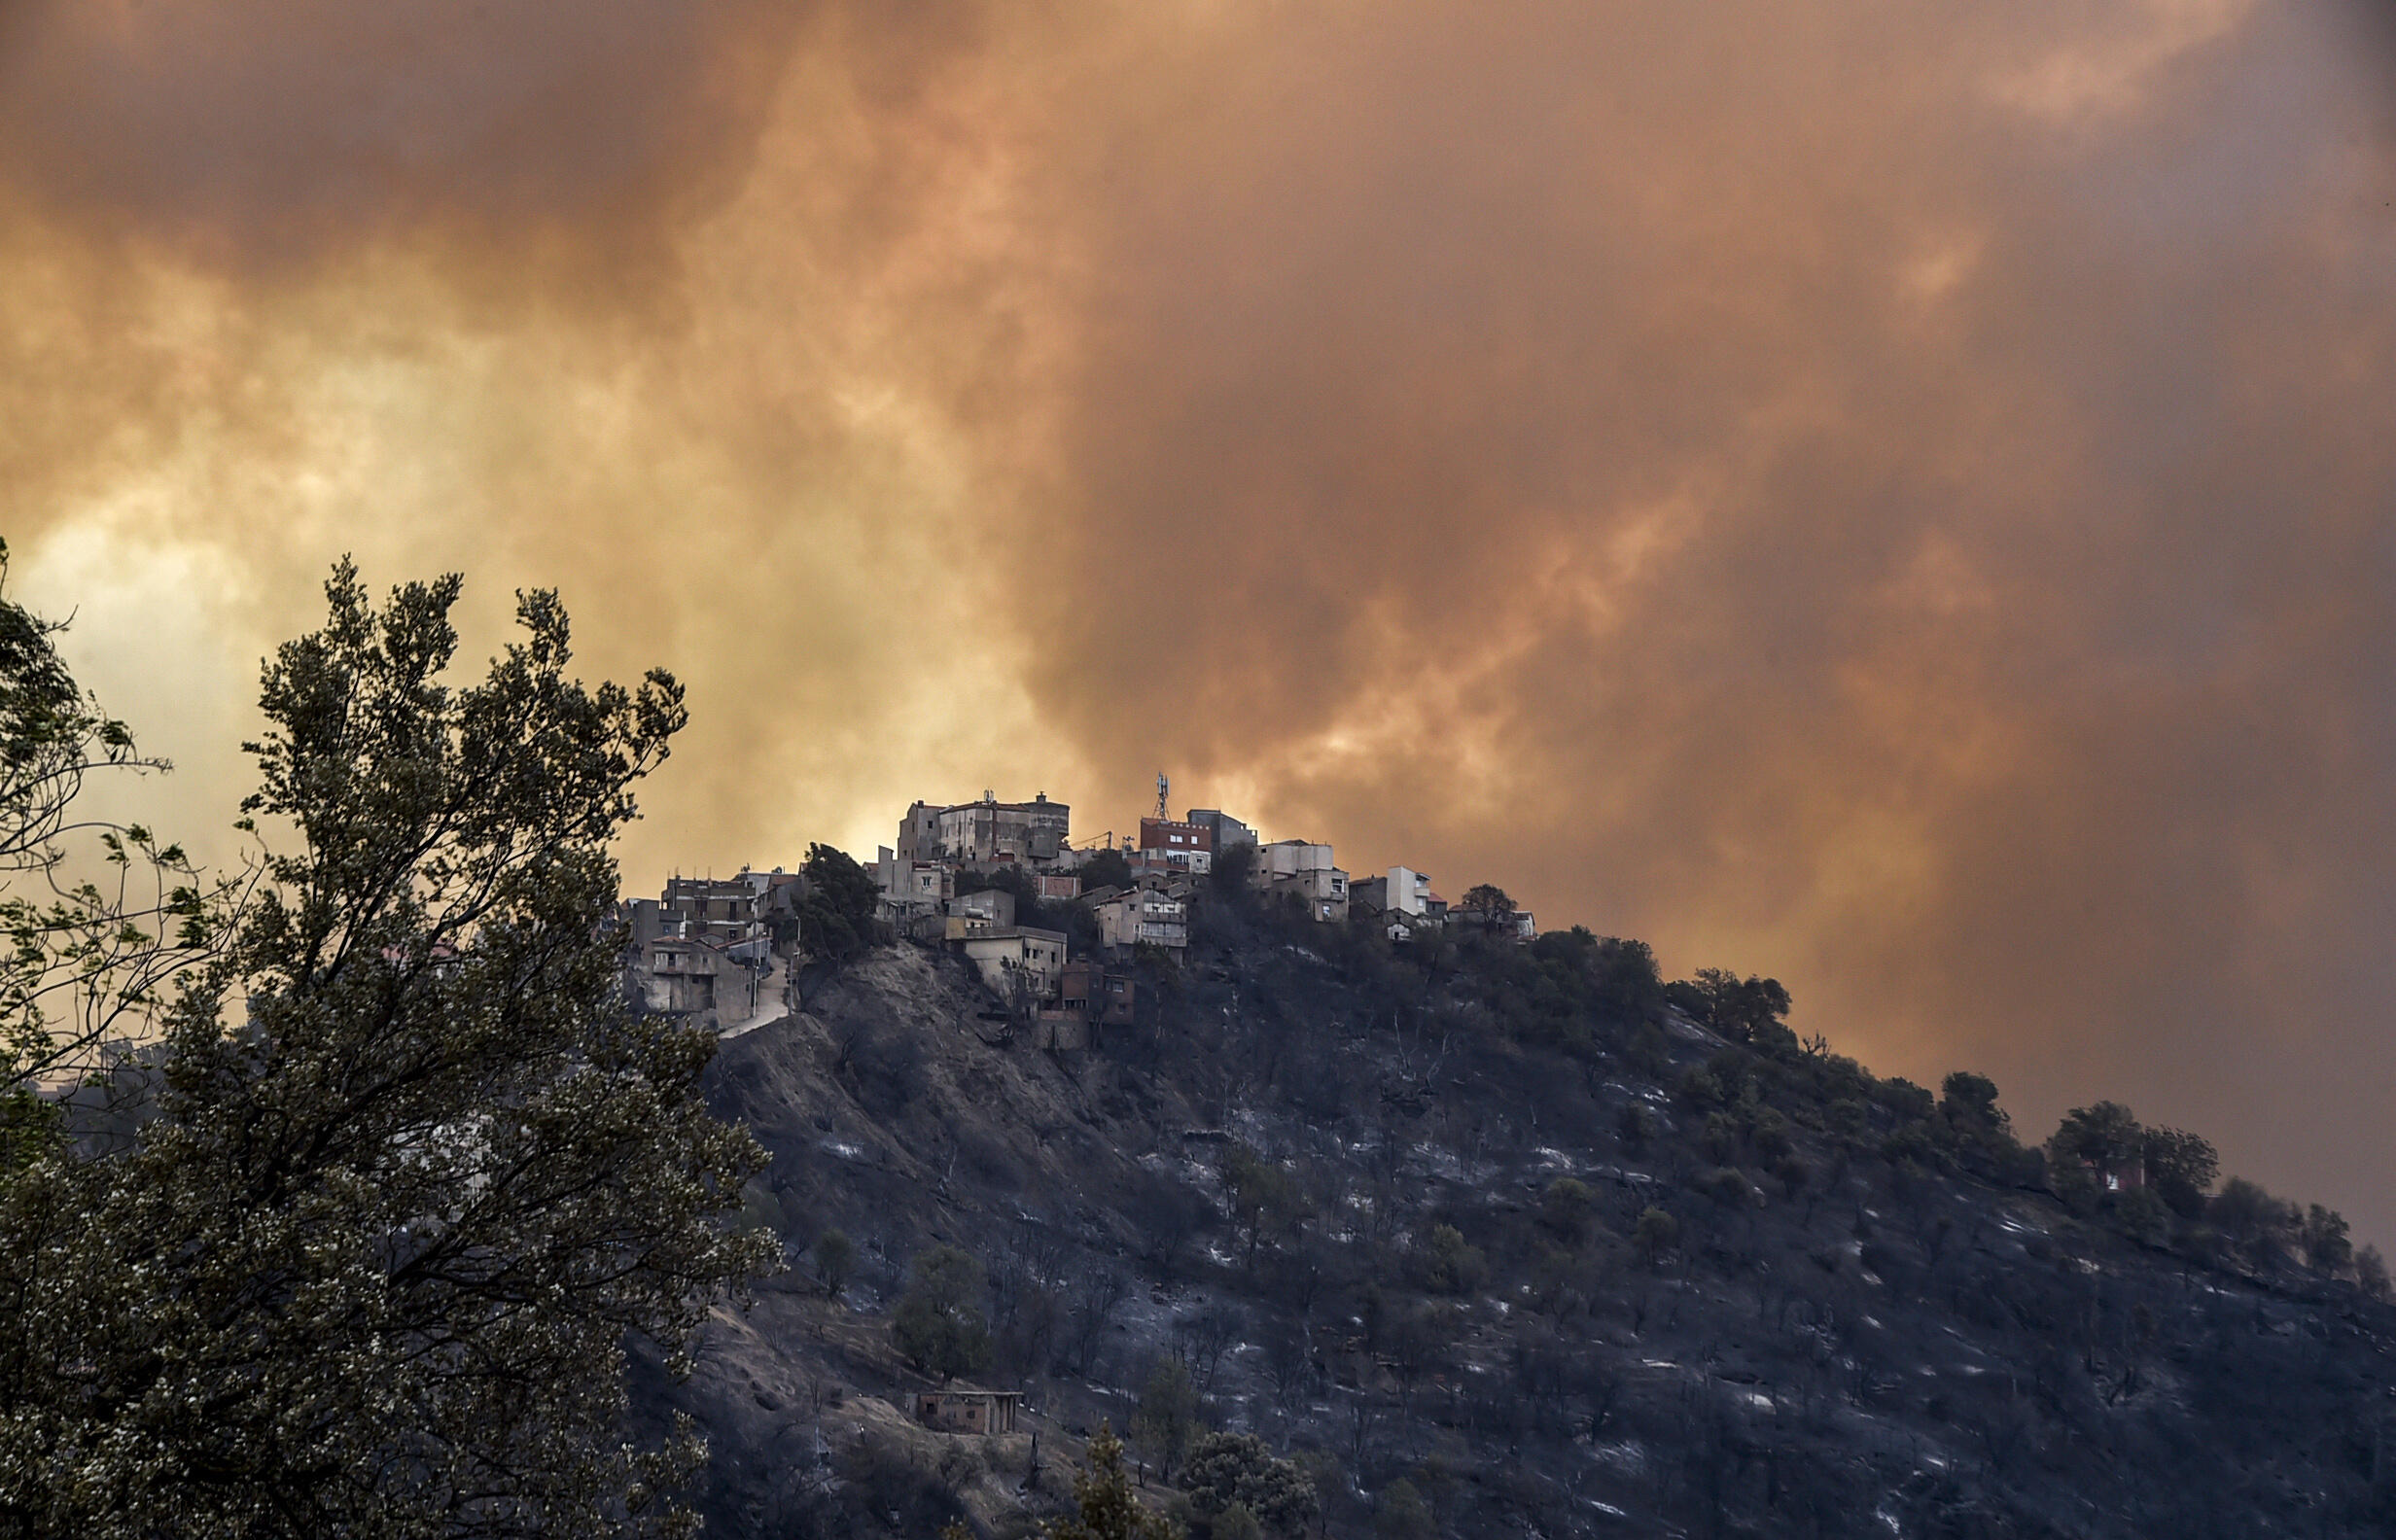 Smoke rises from a wildfire in the forested hills of the Kabylie region, east of the capital Algiers